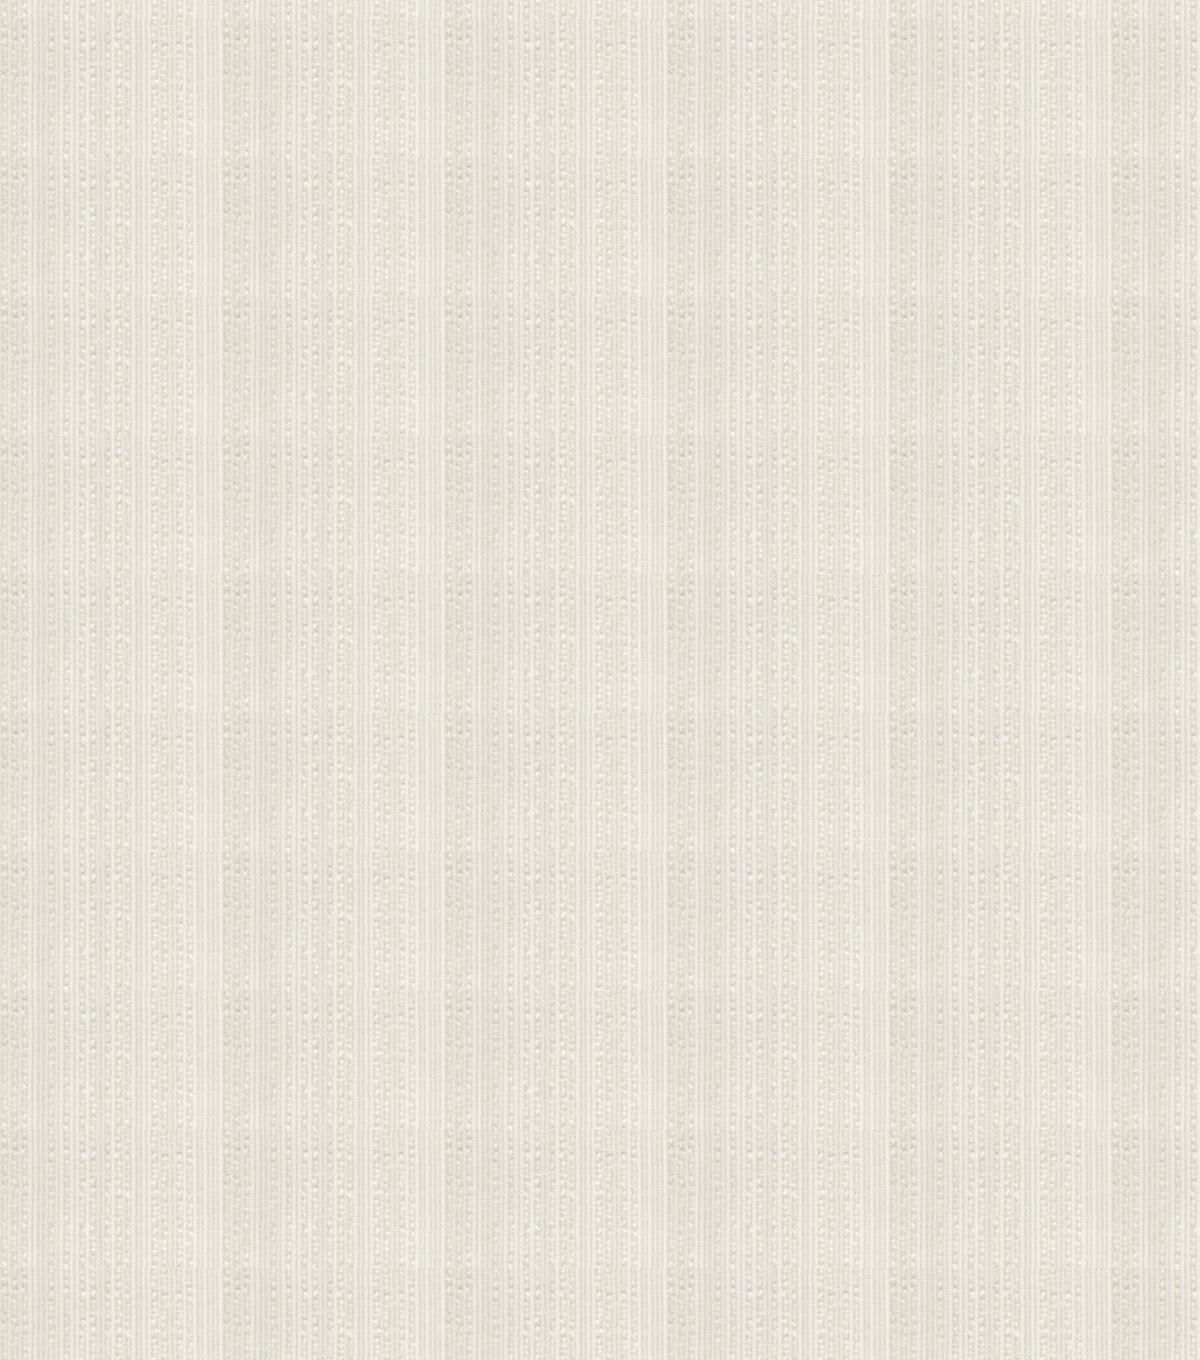 Home Decor 8\u0022x8\u0022 Fabric Swatch-Eaton Square Avenue Dove